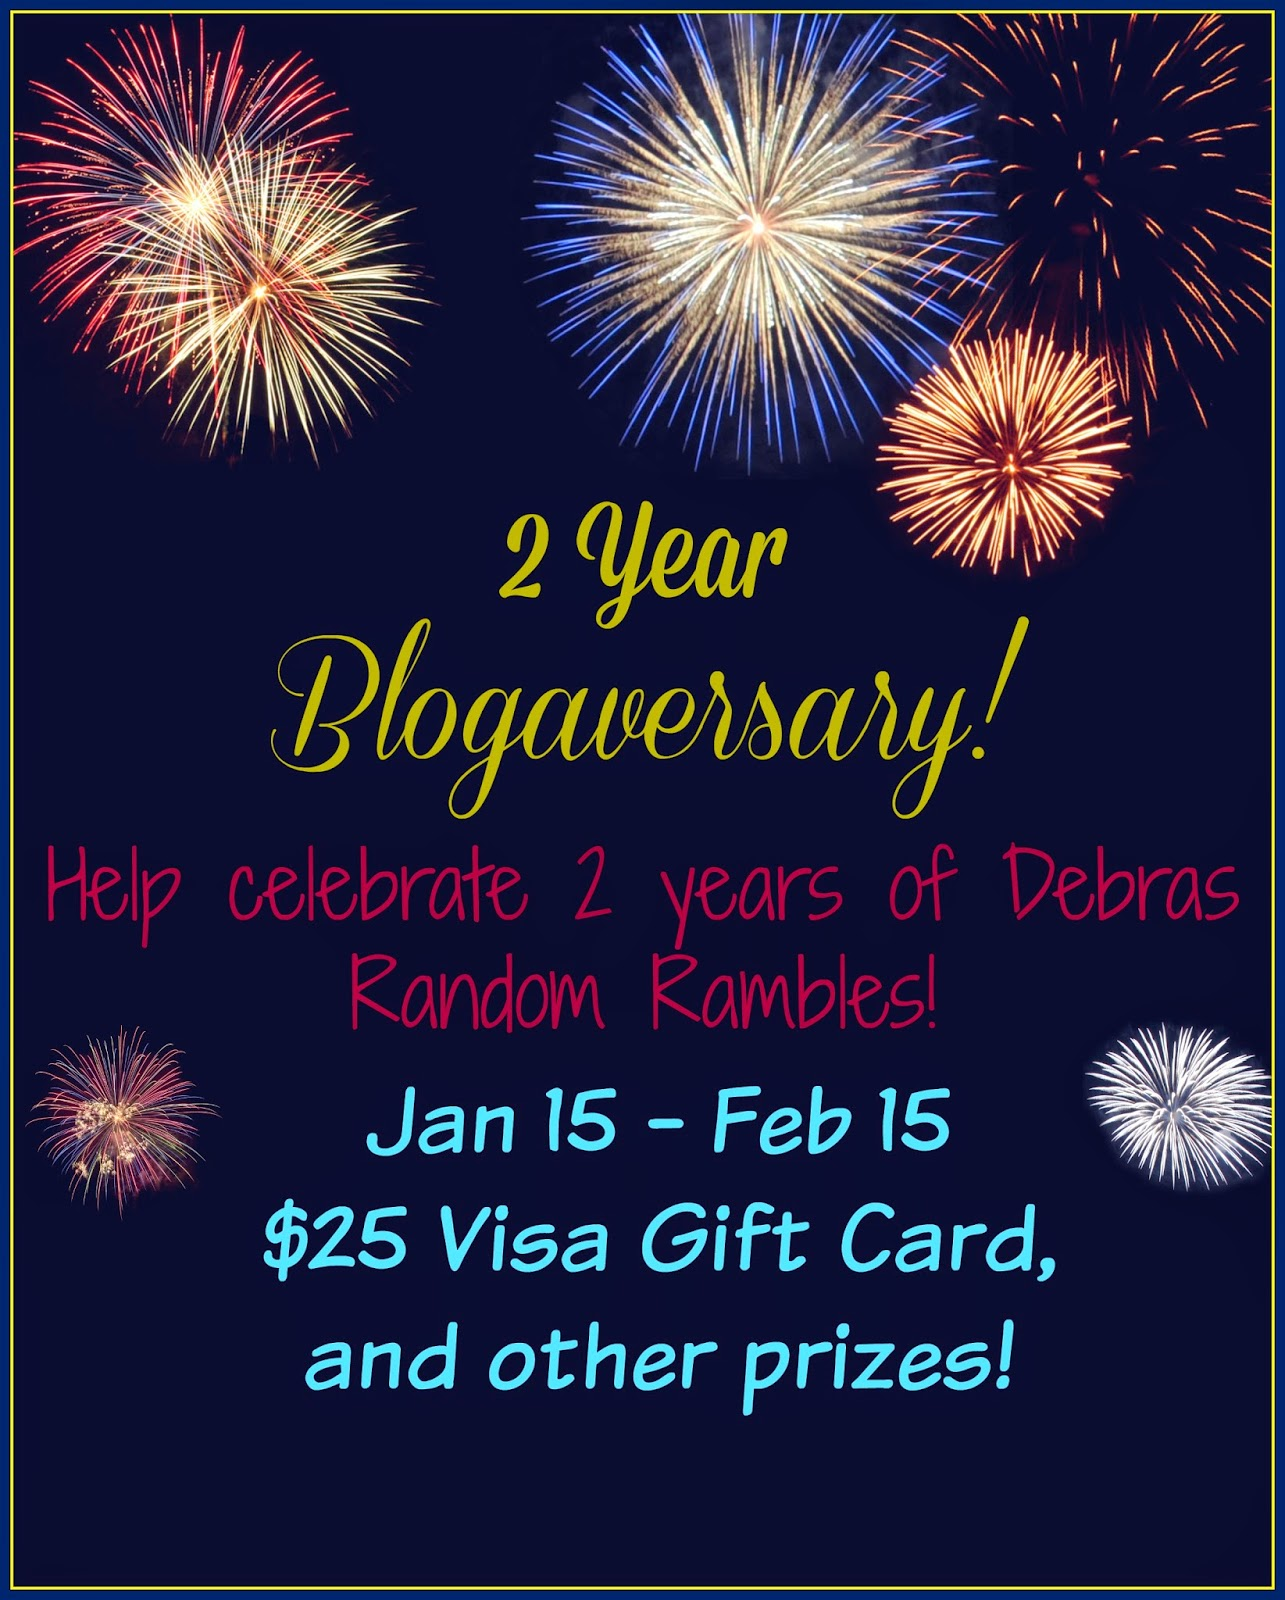 Enter the  Debras Random Rambles Blogaversary Giveaway. Ends 2/15.